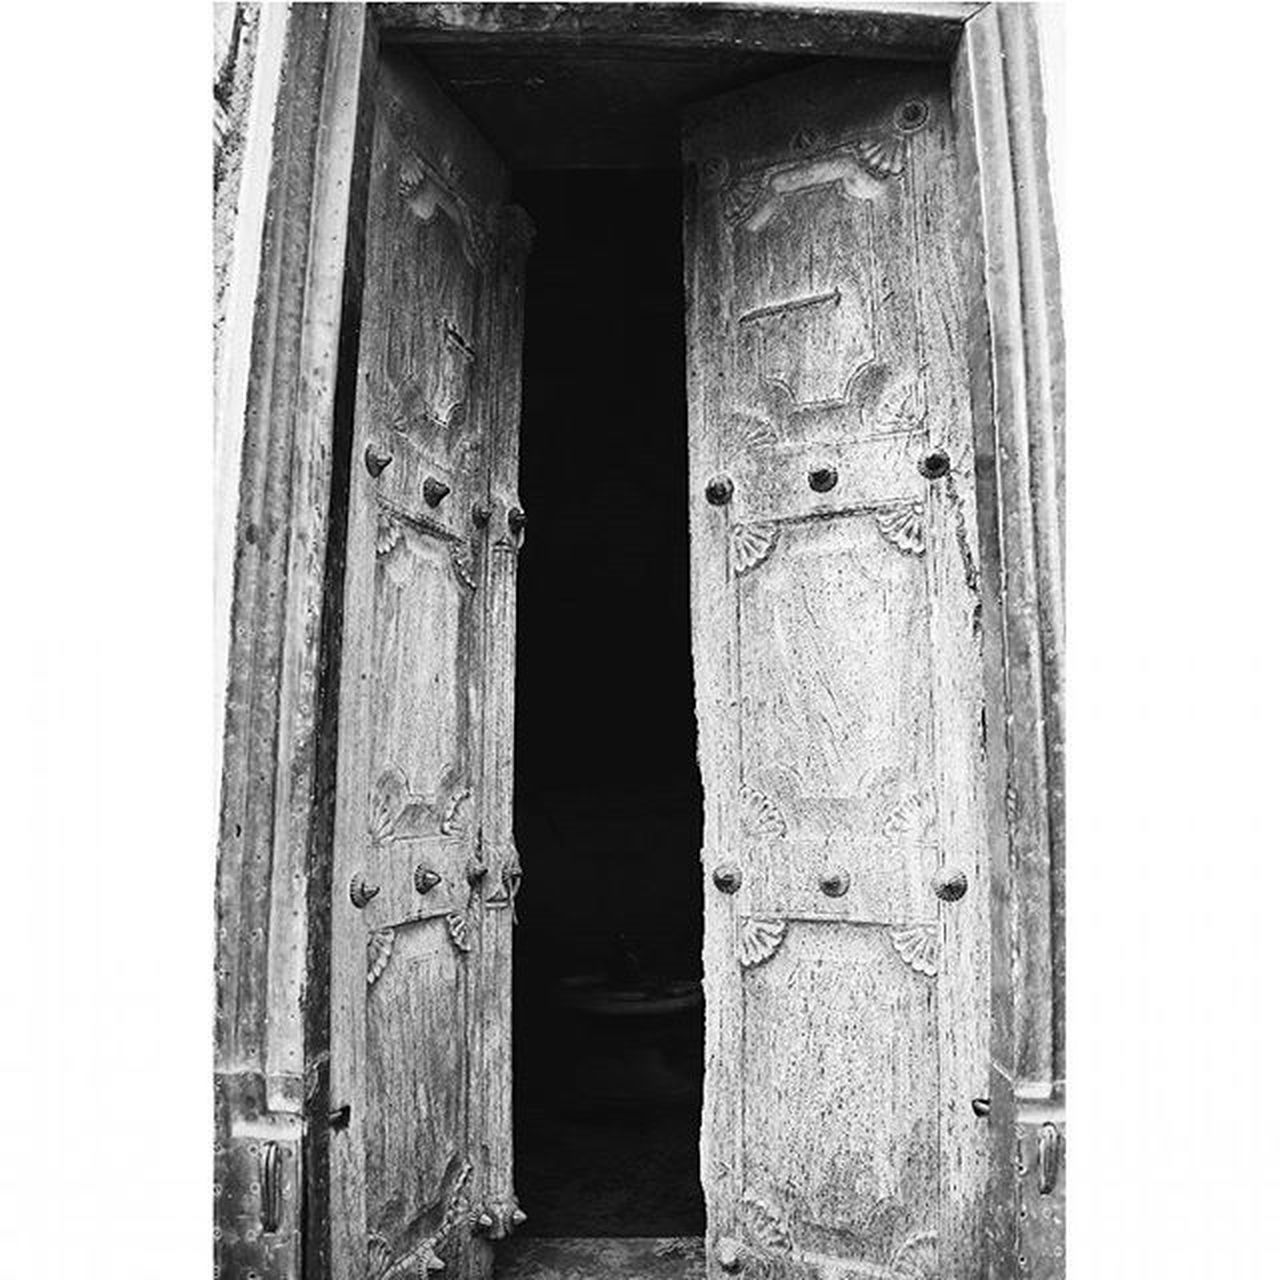 The door less opened... Door Ancient Vintage Architecture Portal Timetravel Travelingram Vintagehome Ancientarchitecture Vscocam Travel Traditional Newworld Instaart Nikond5300 Nikoninsta Architecturephotography Oldindian Historic Symbolism Blackandwhite Monochrome Wood Templevisit Indian pattern design texture raw geometric